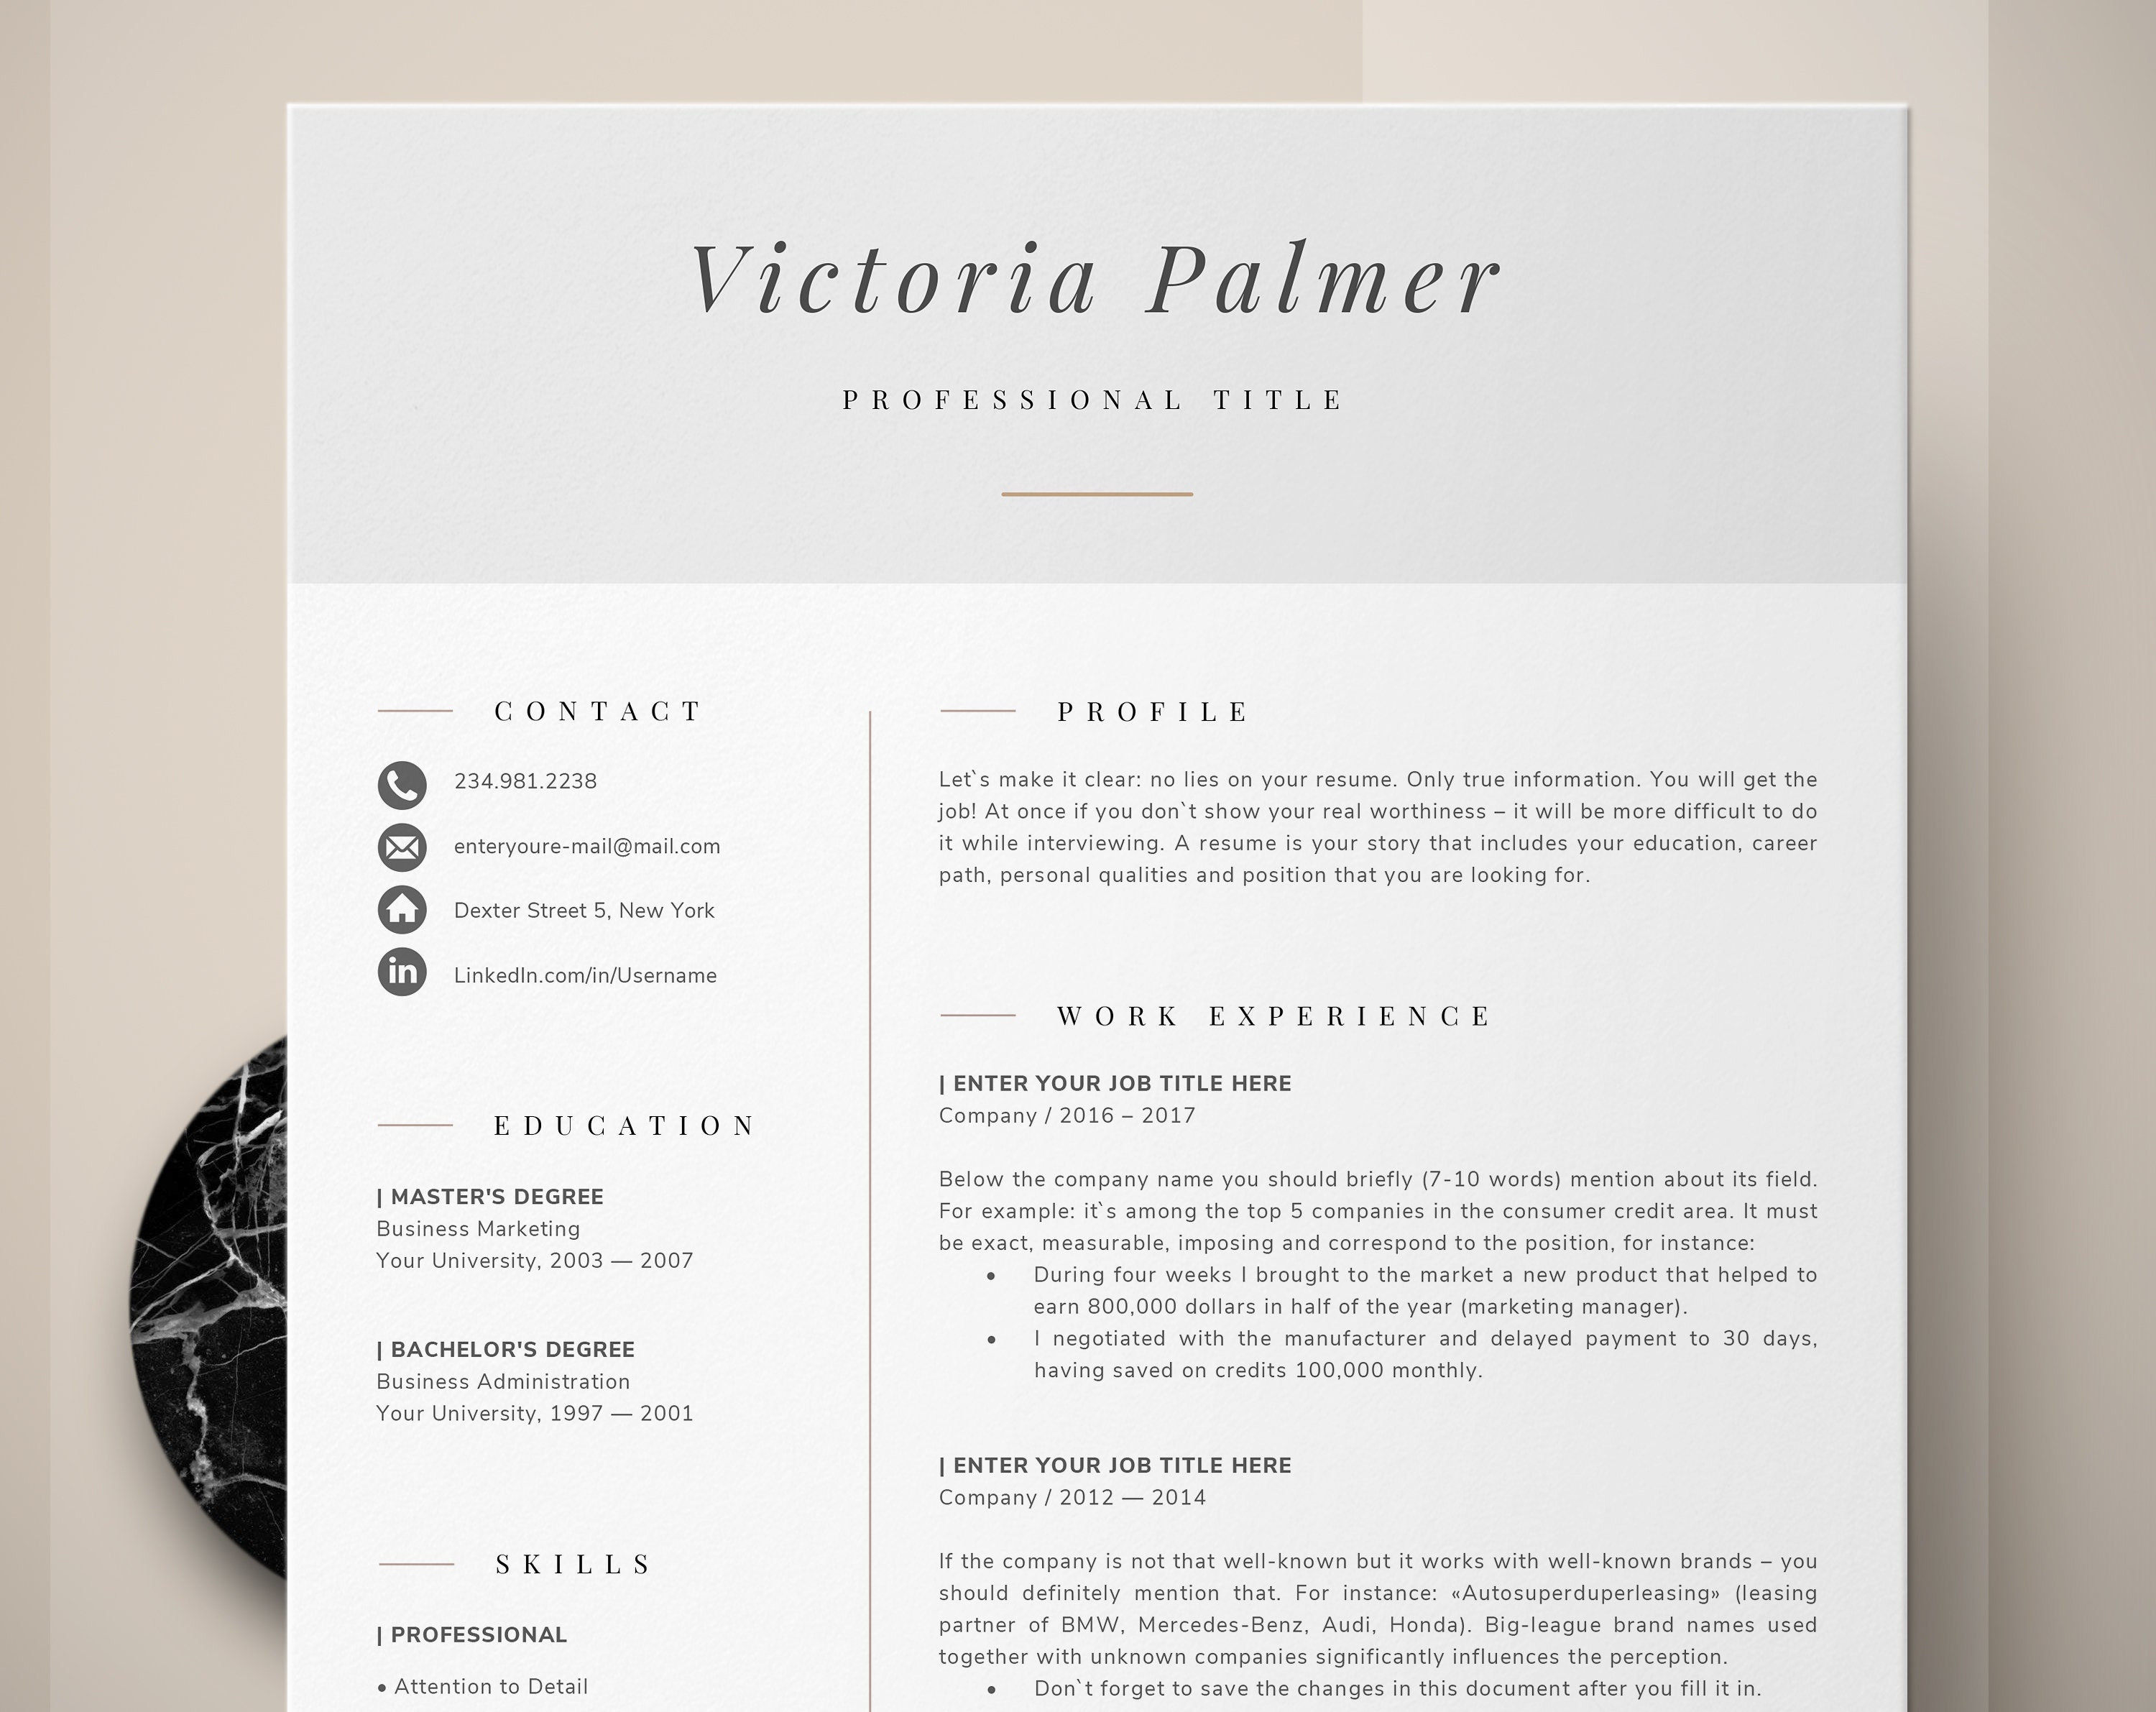 Modern Professional Resume, Two Page Resume, Curriculum Vitae Template, 2  Page Resume and Cover Letter Template + Reference = 4 page resume